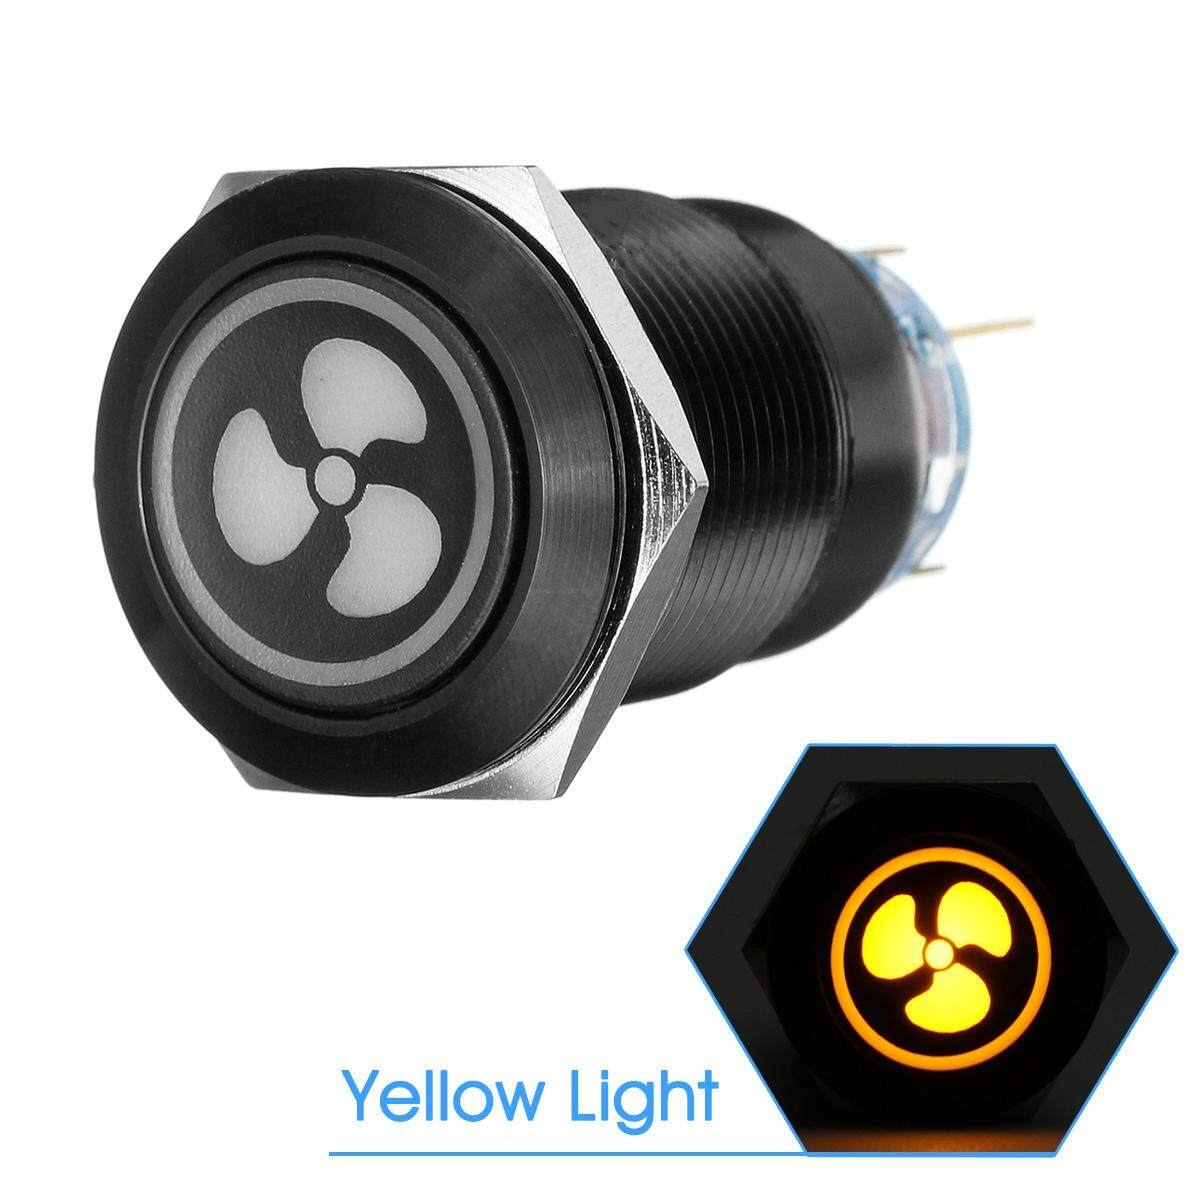 1 Pcs Details About Fan 12v Led On-Off Stainless St Push Button Custom Panel Light Switch Yellow By Haldis.